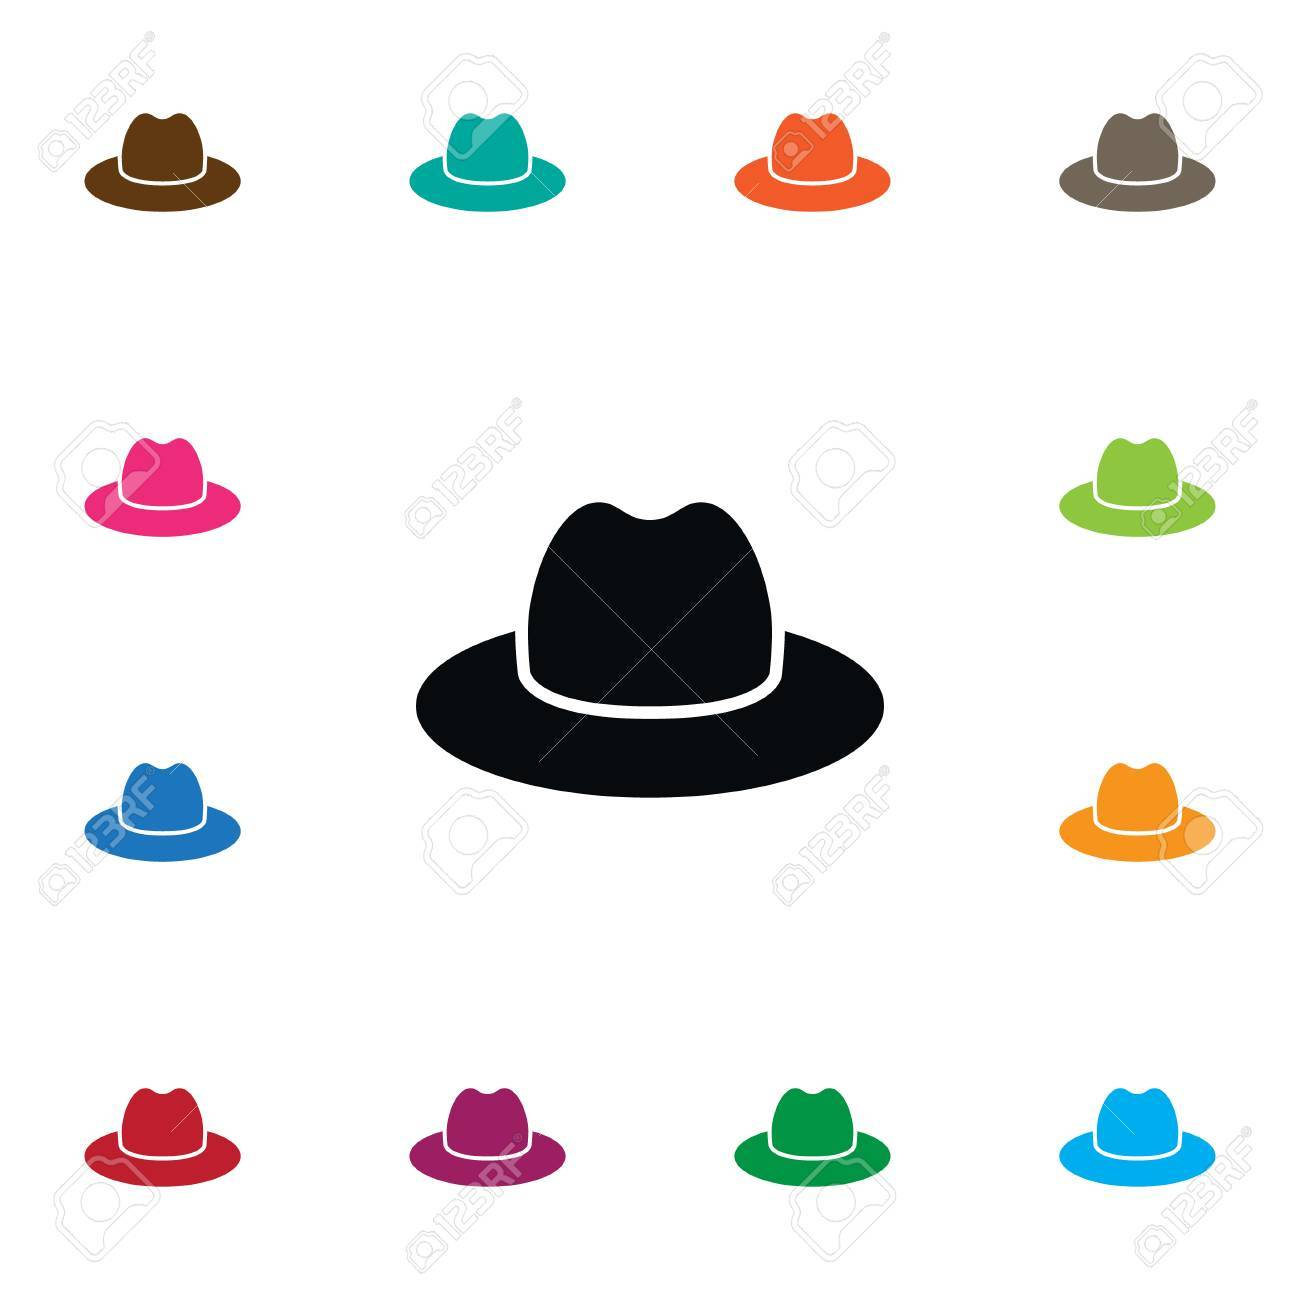 07484d0212f Gaucho Vector Element Can Be Used For Cap